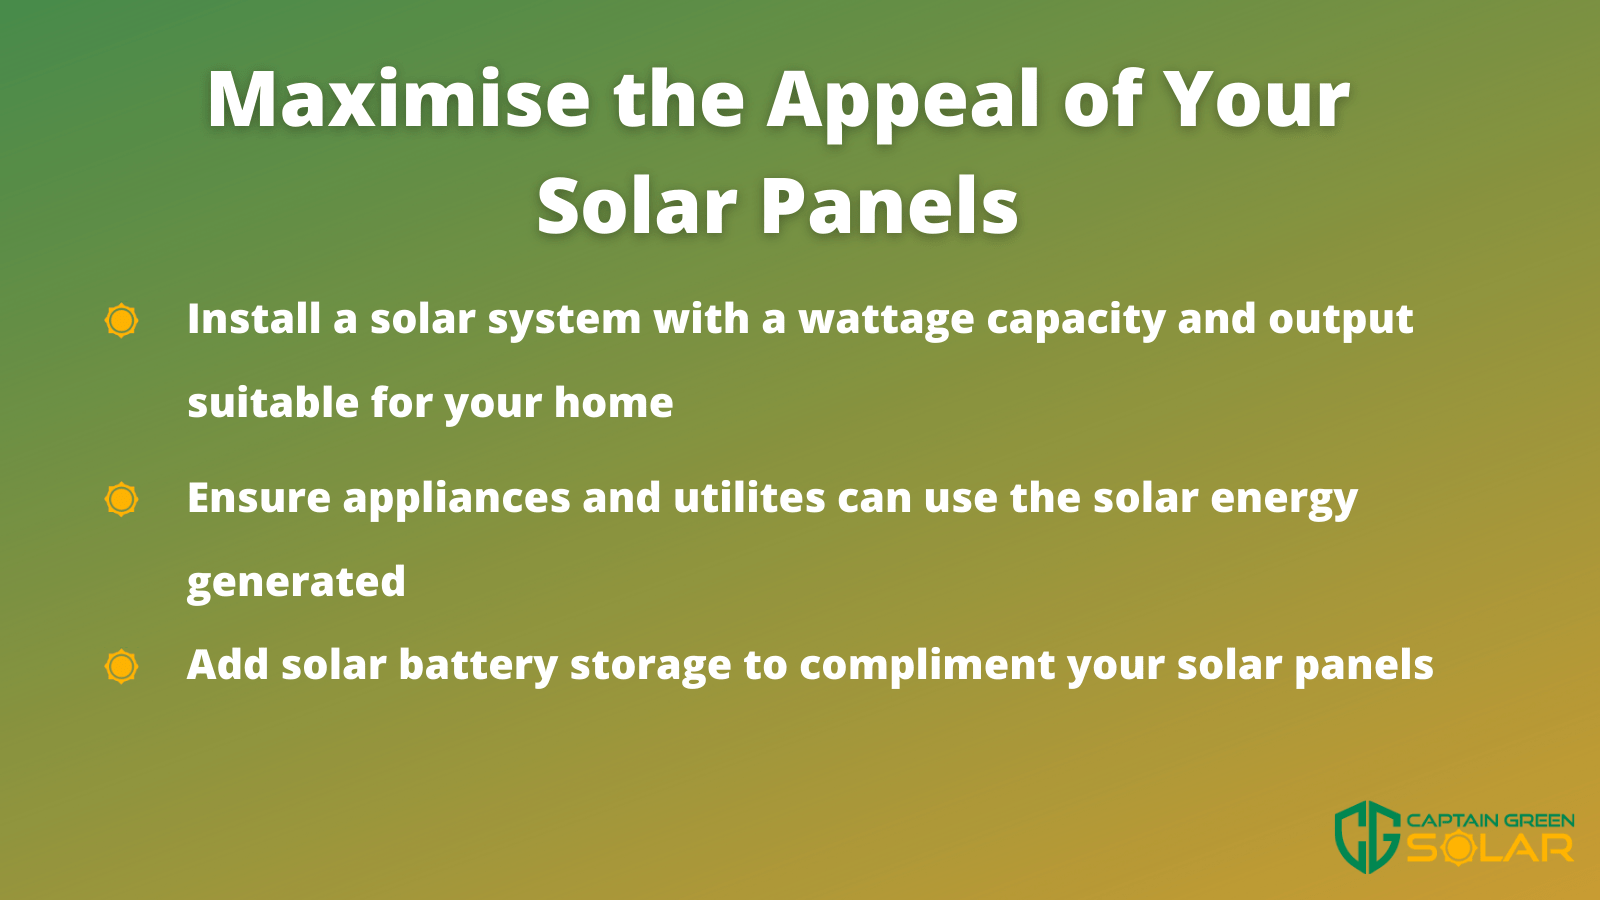 maximise appeal with solar panels